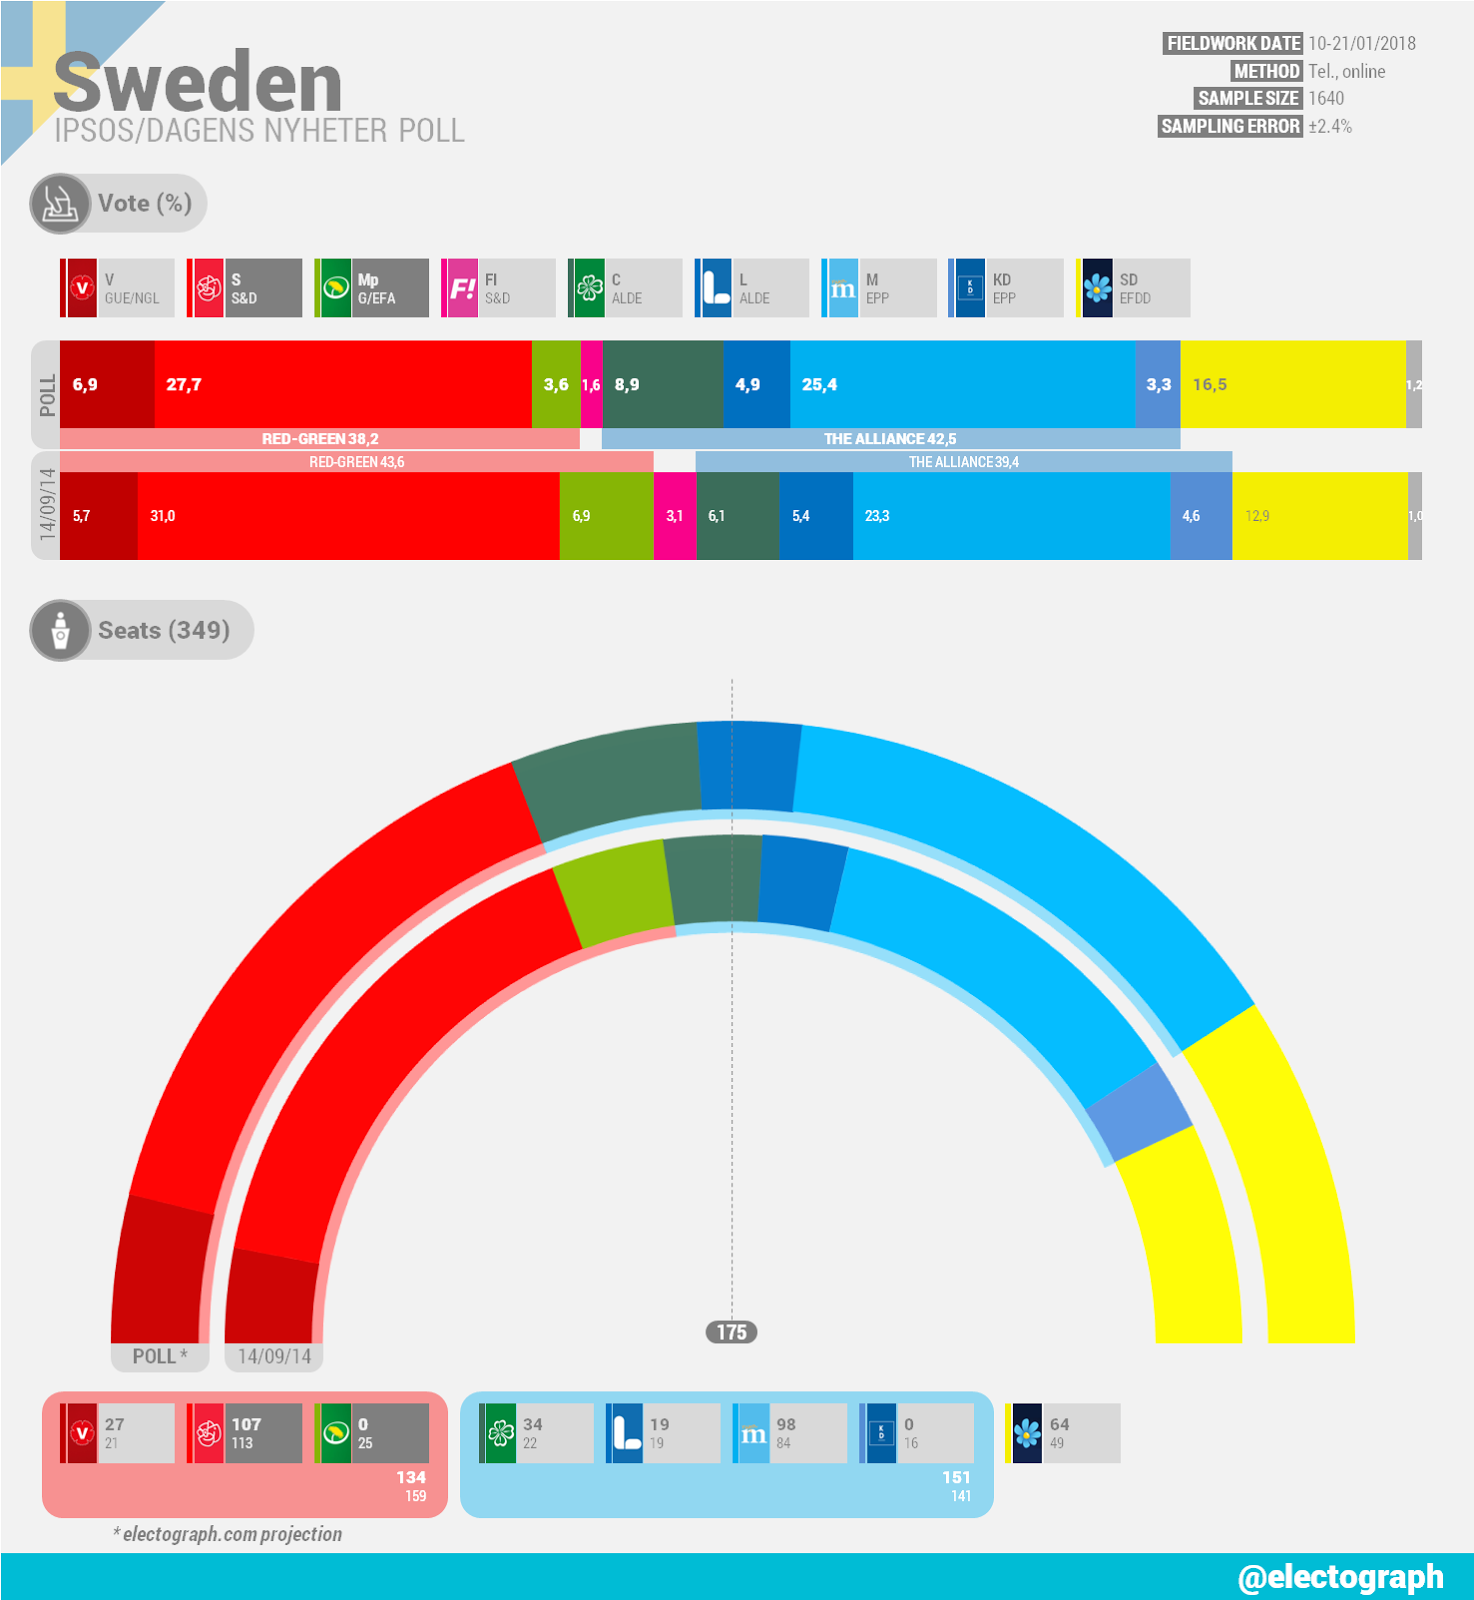 SWEDEN Ipsos poll chart for Dagens Nyheter, January 2018